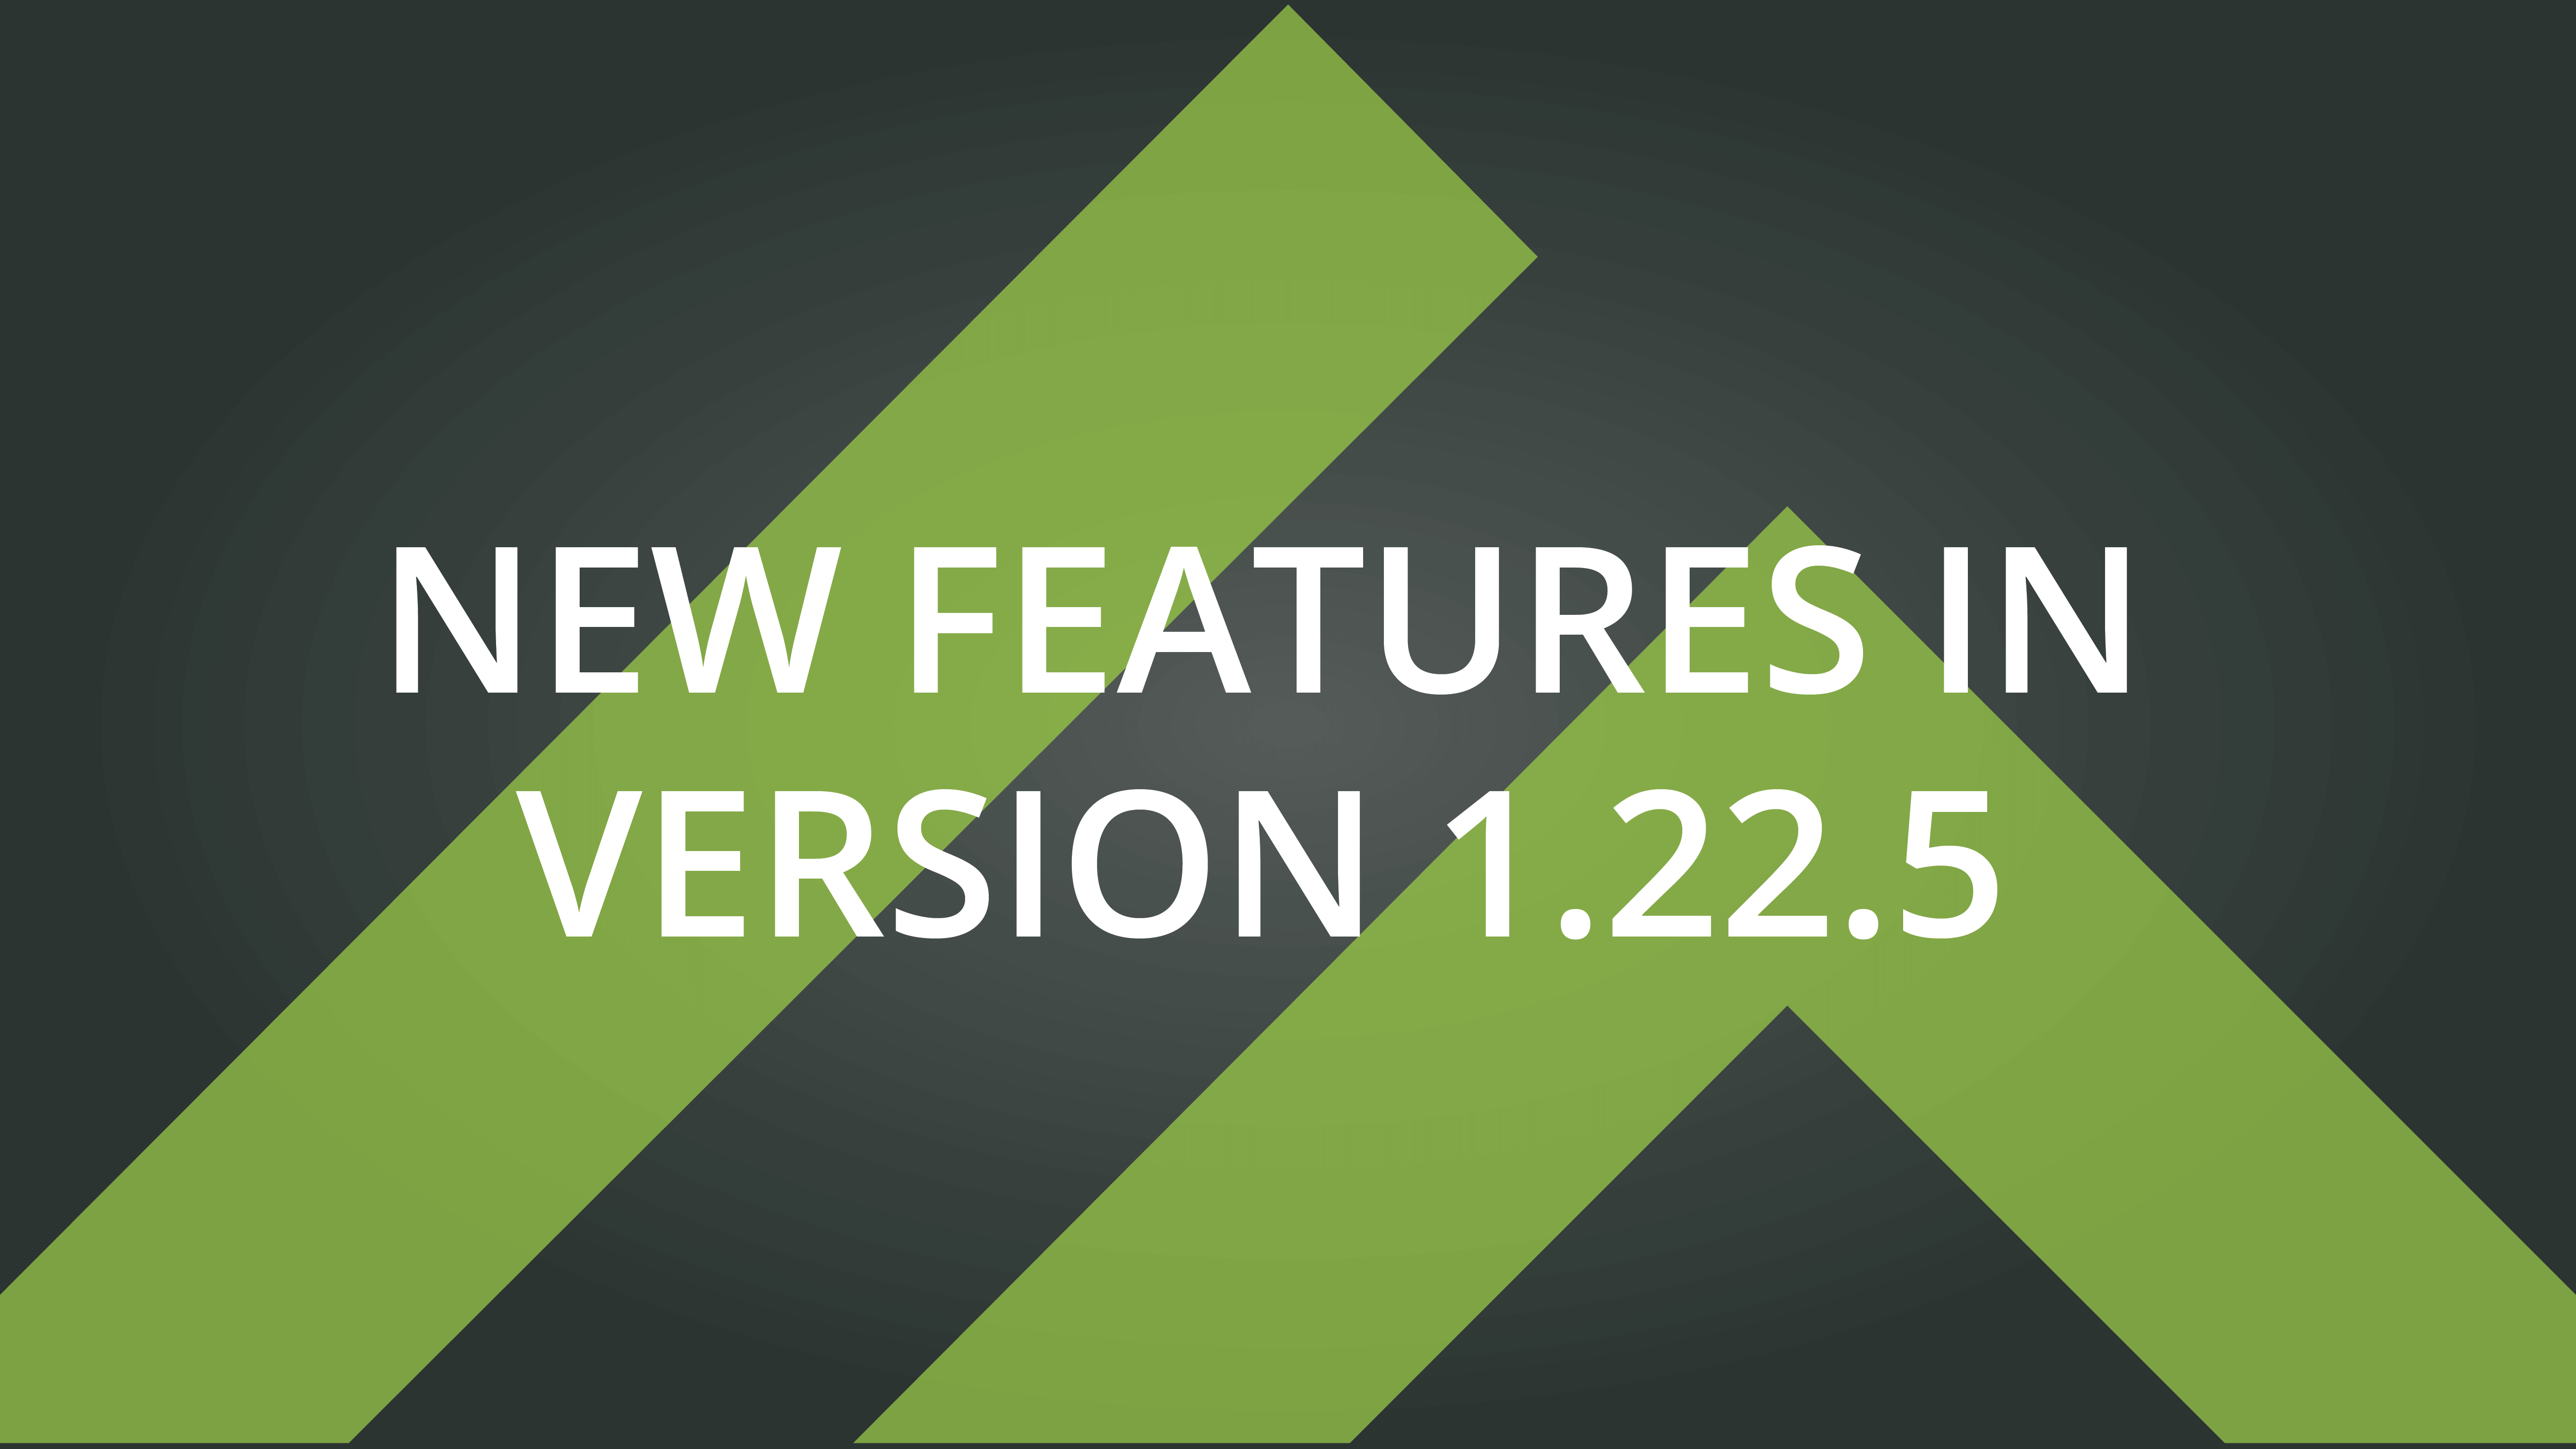 new features version 1.22.5